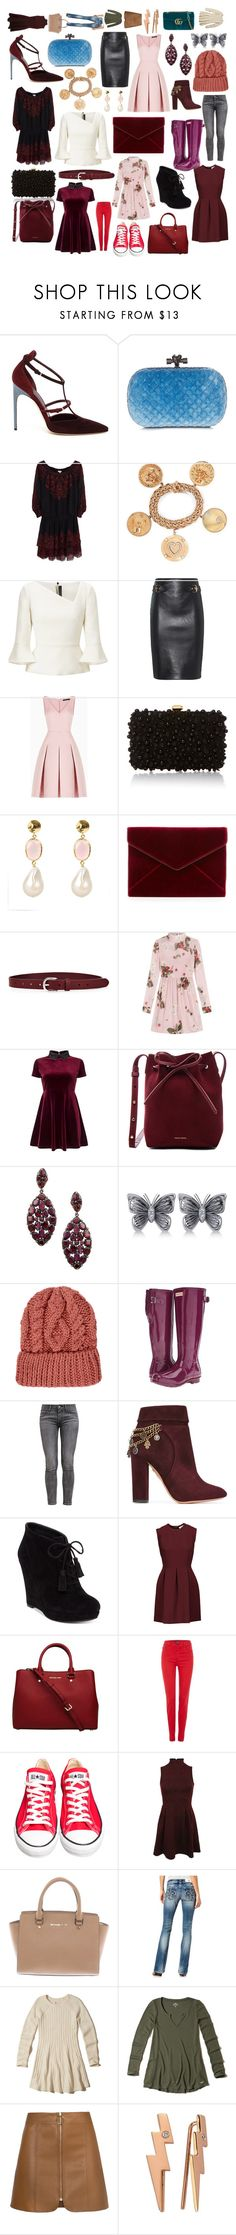 """Some of my favorite things #50"" by andyarana ❤ liked on Polyvore featuring Brian Atwood, Bottega Veneta, Joie, Fred Leighton, Roland Mouret, Moschino, BCBGMAXAZRIA, Elie Saab, Latelita and Rebecca Minkoff"